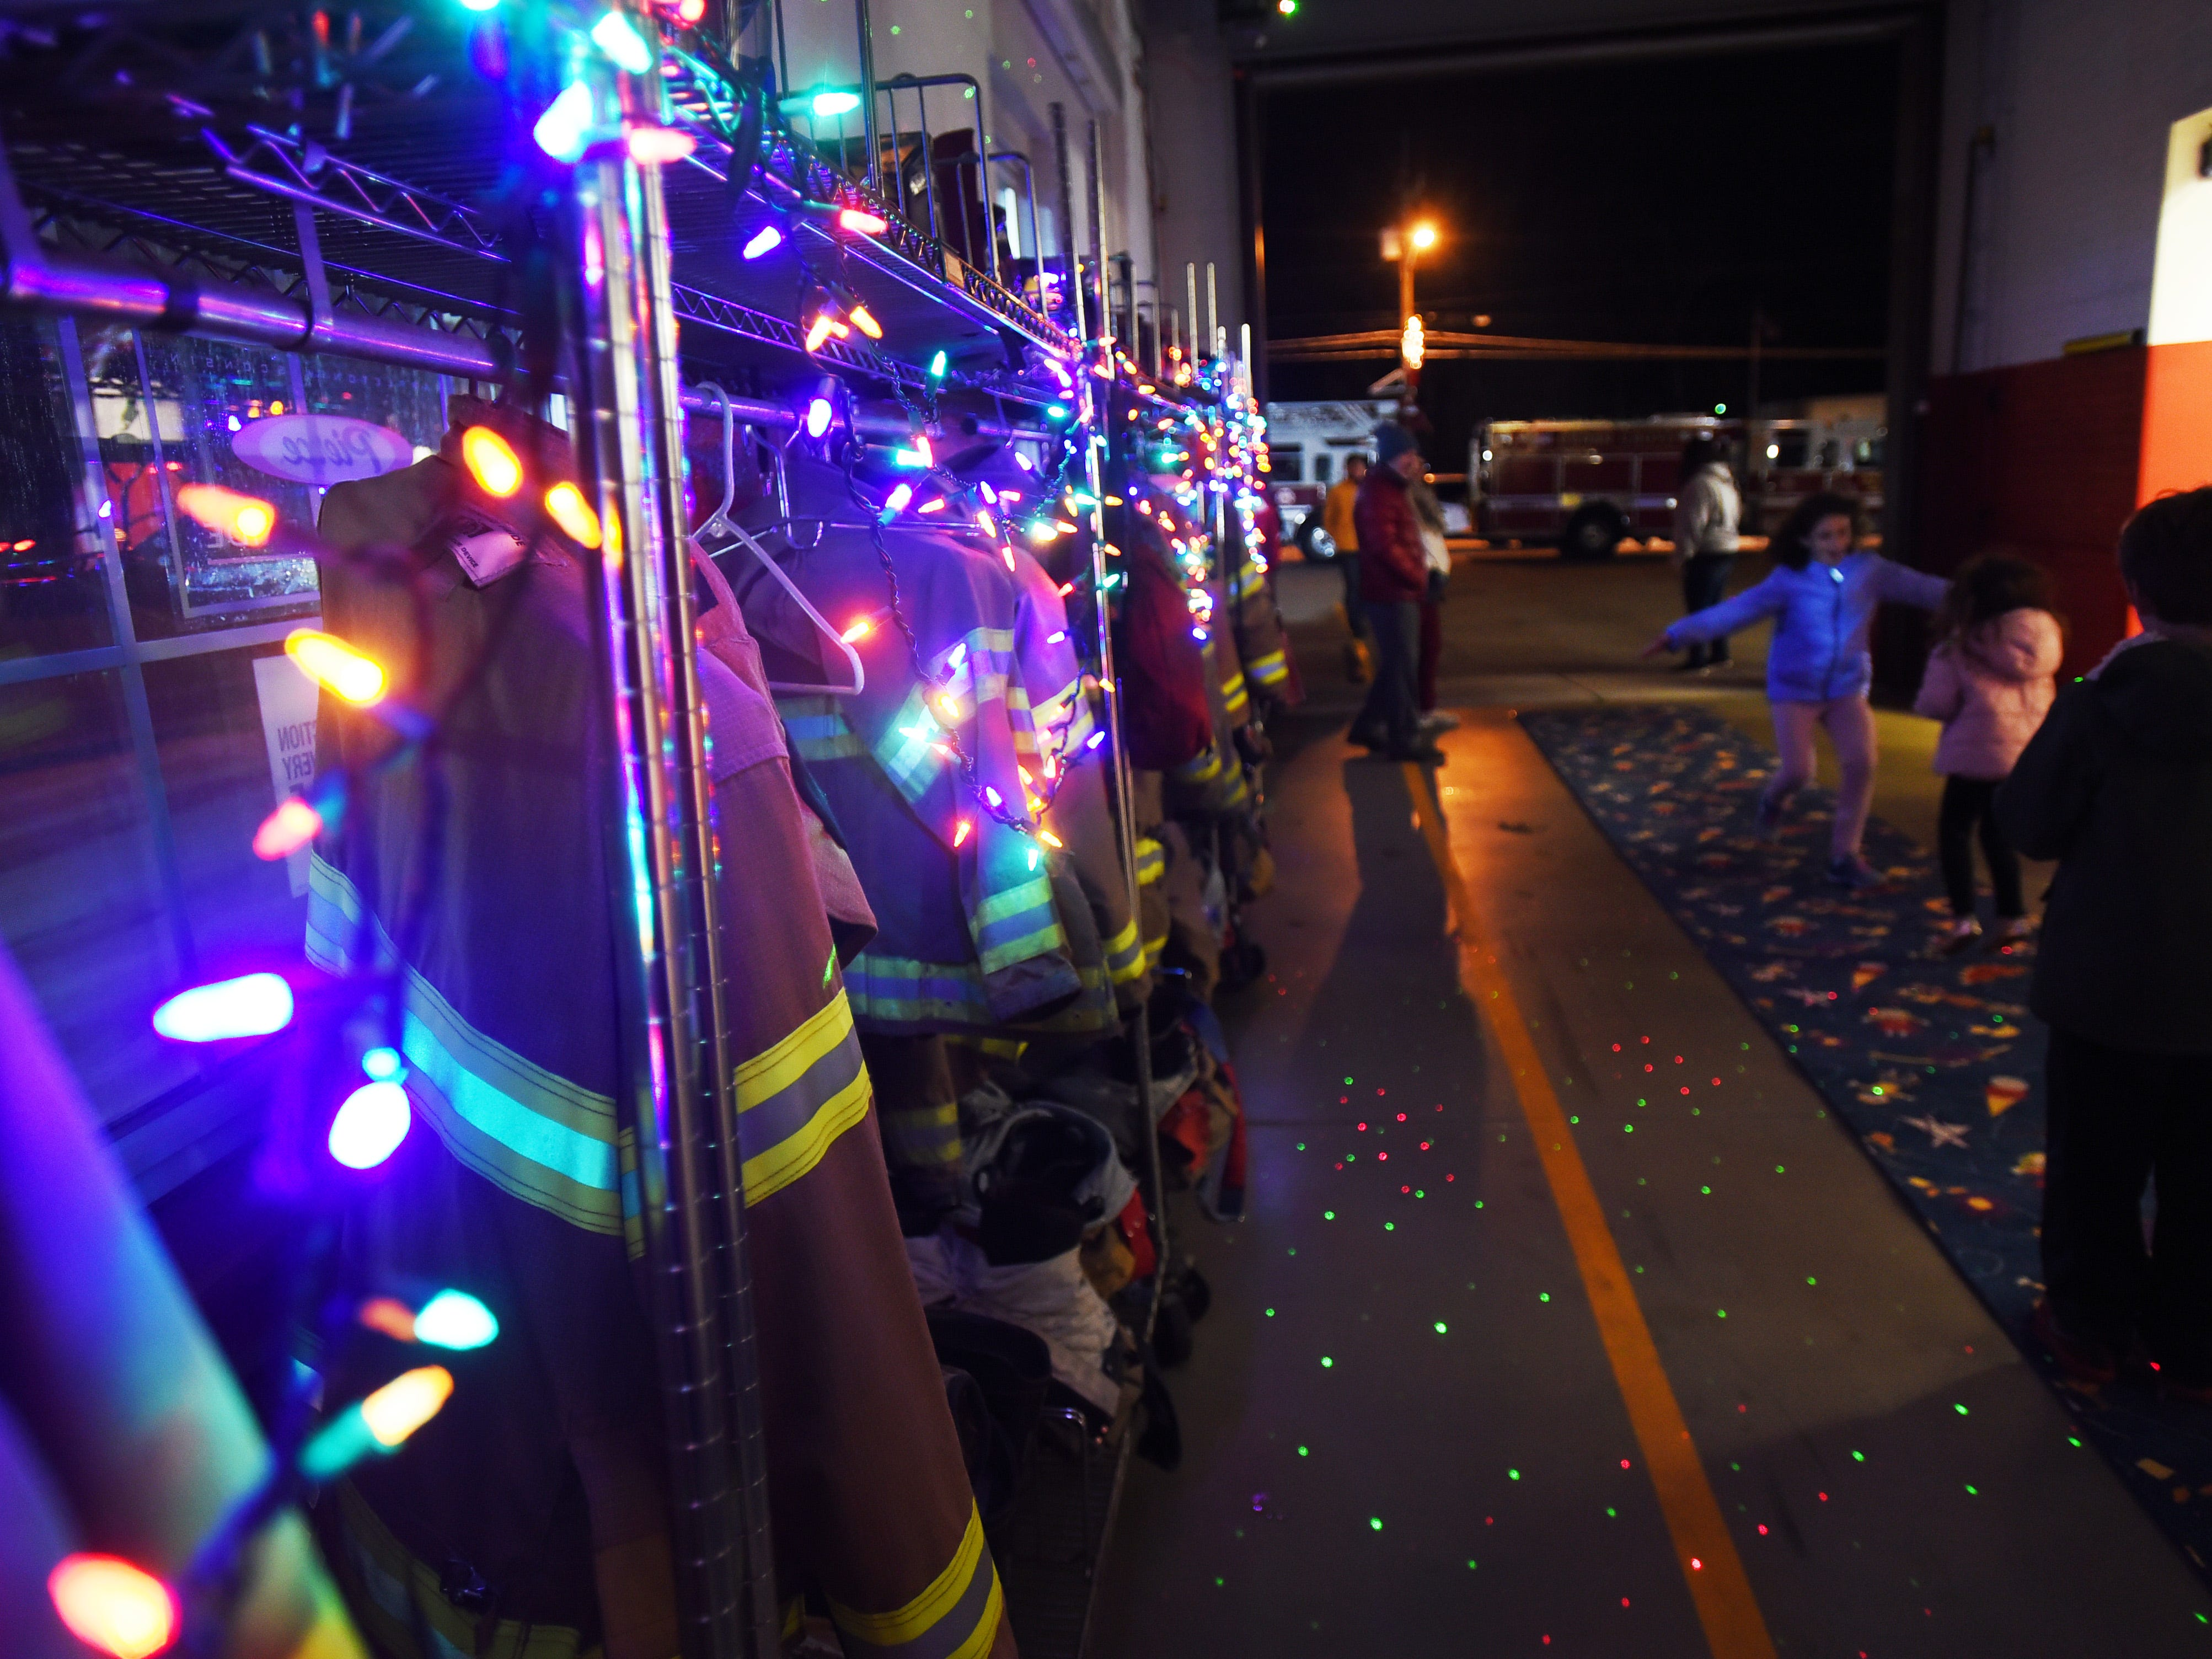 Christmas lights illuminate firefighters jackets inside of Center Fire Company 1, prior to the Christmas Tree Lighting ceremony at Cedar Grove Town Hall on 12/03/18.